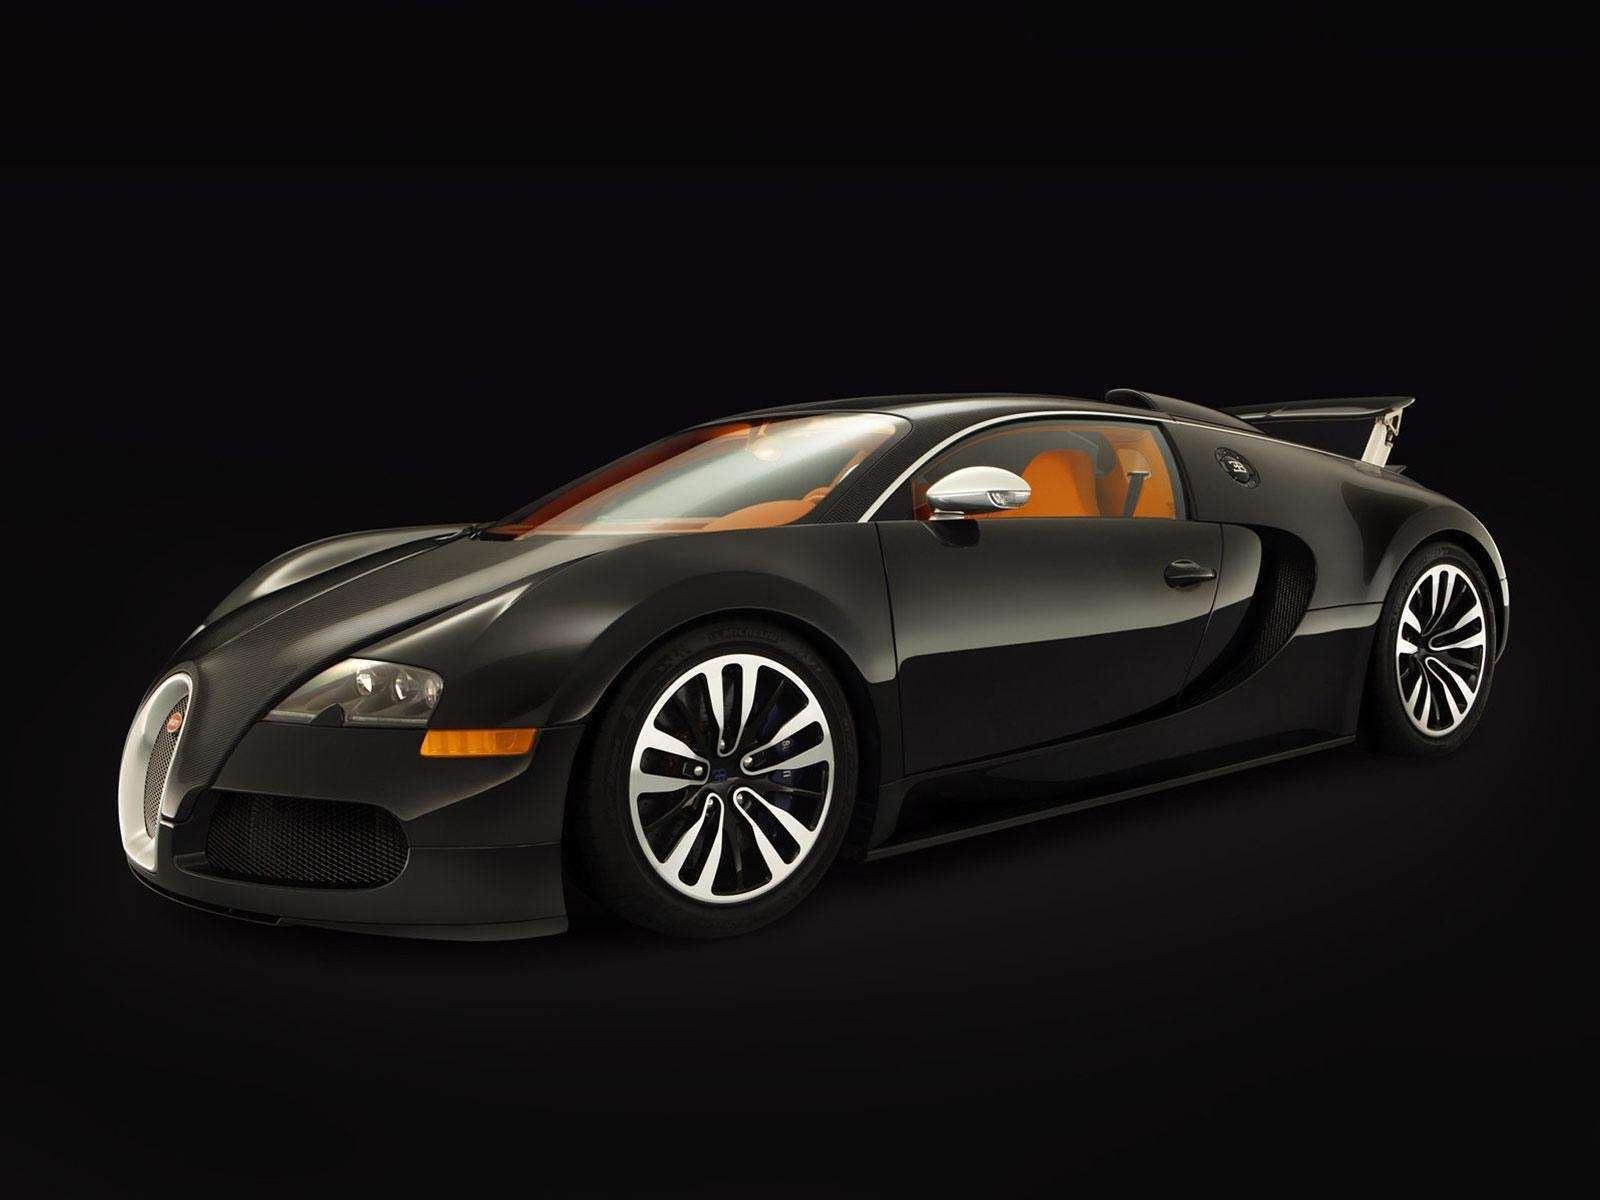 Top Hd Wallpapers Cars Wallpapers Desktop Hd: Bugatti Car (66) Hd Wallpapers : Hd Car Wallpapers